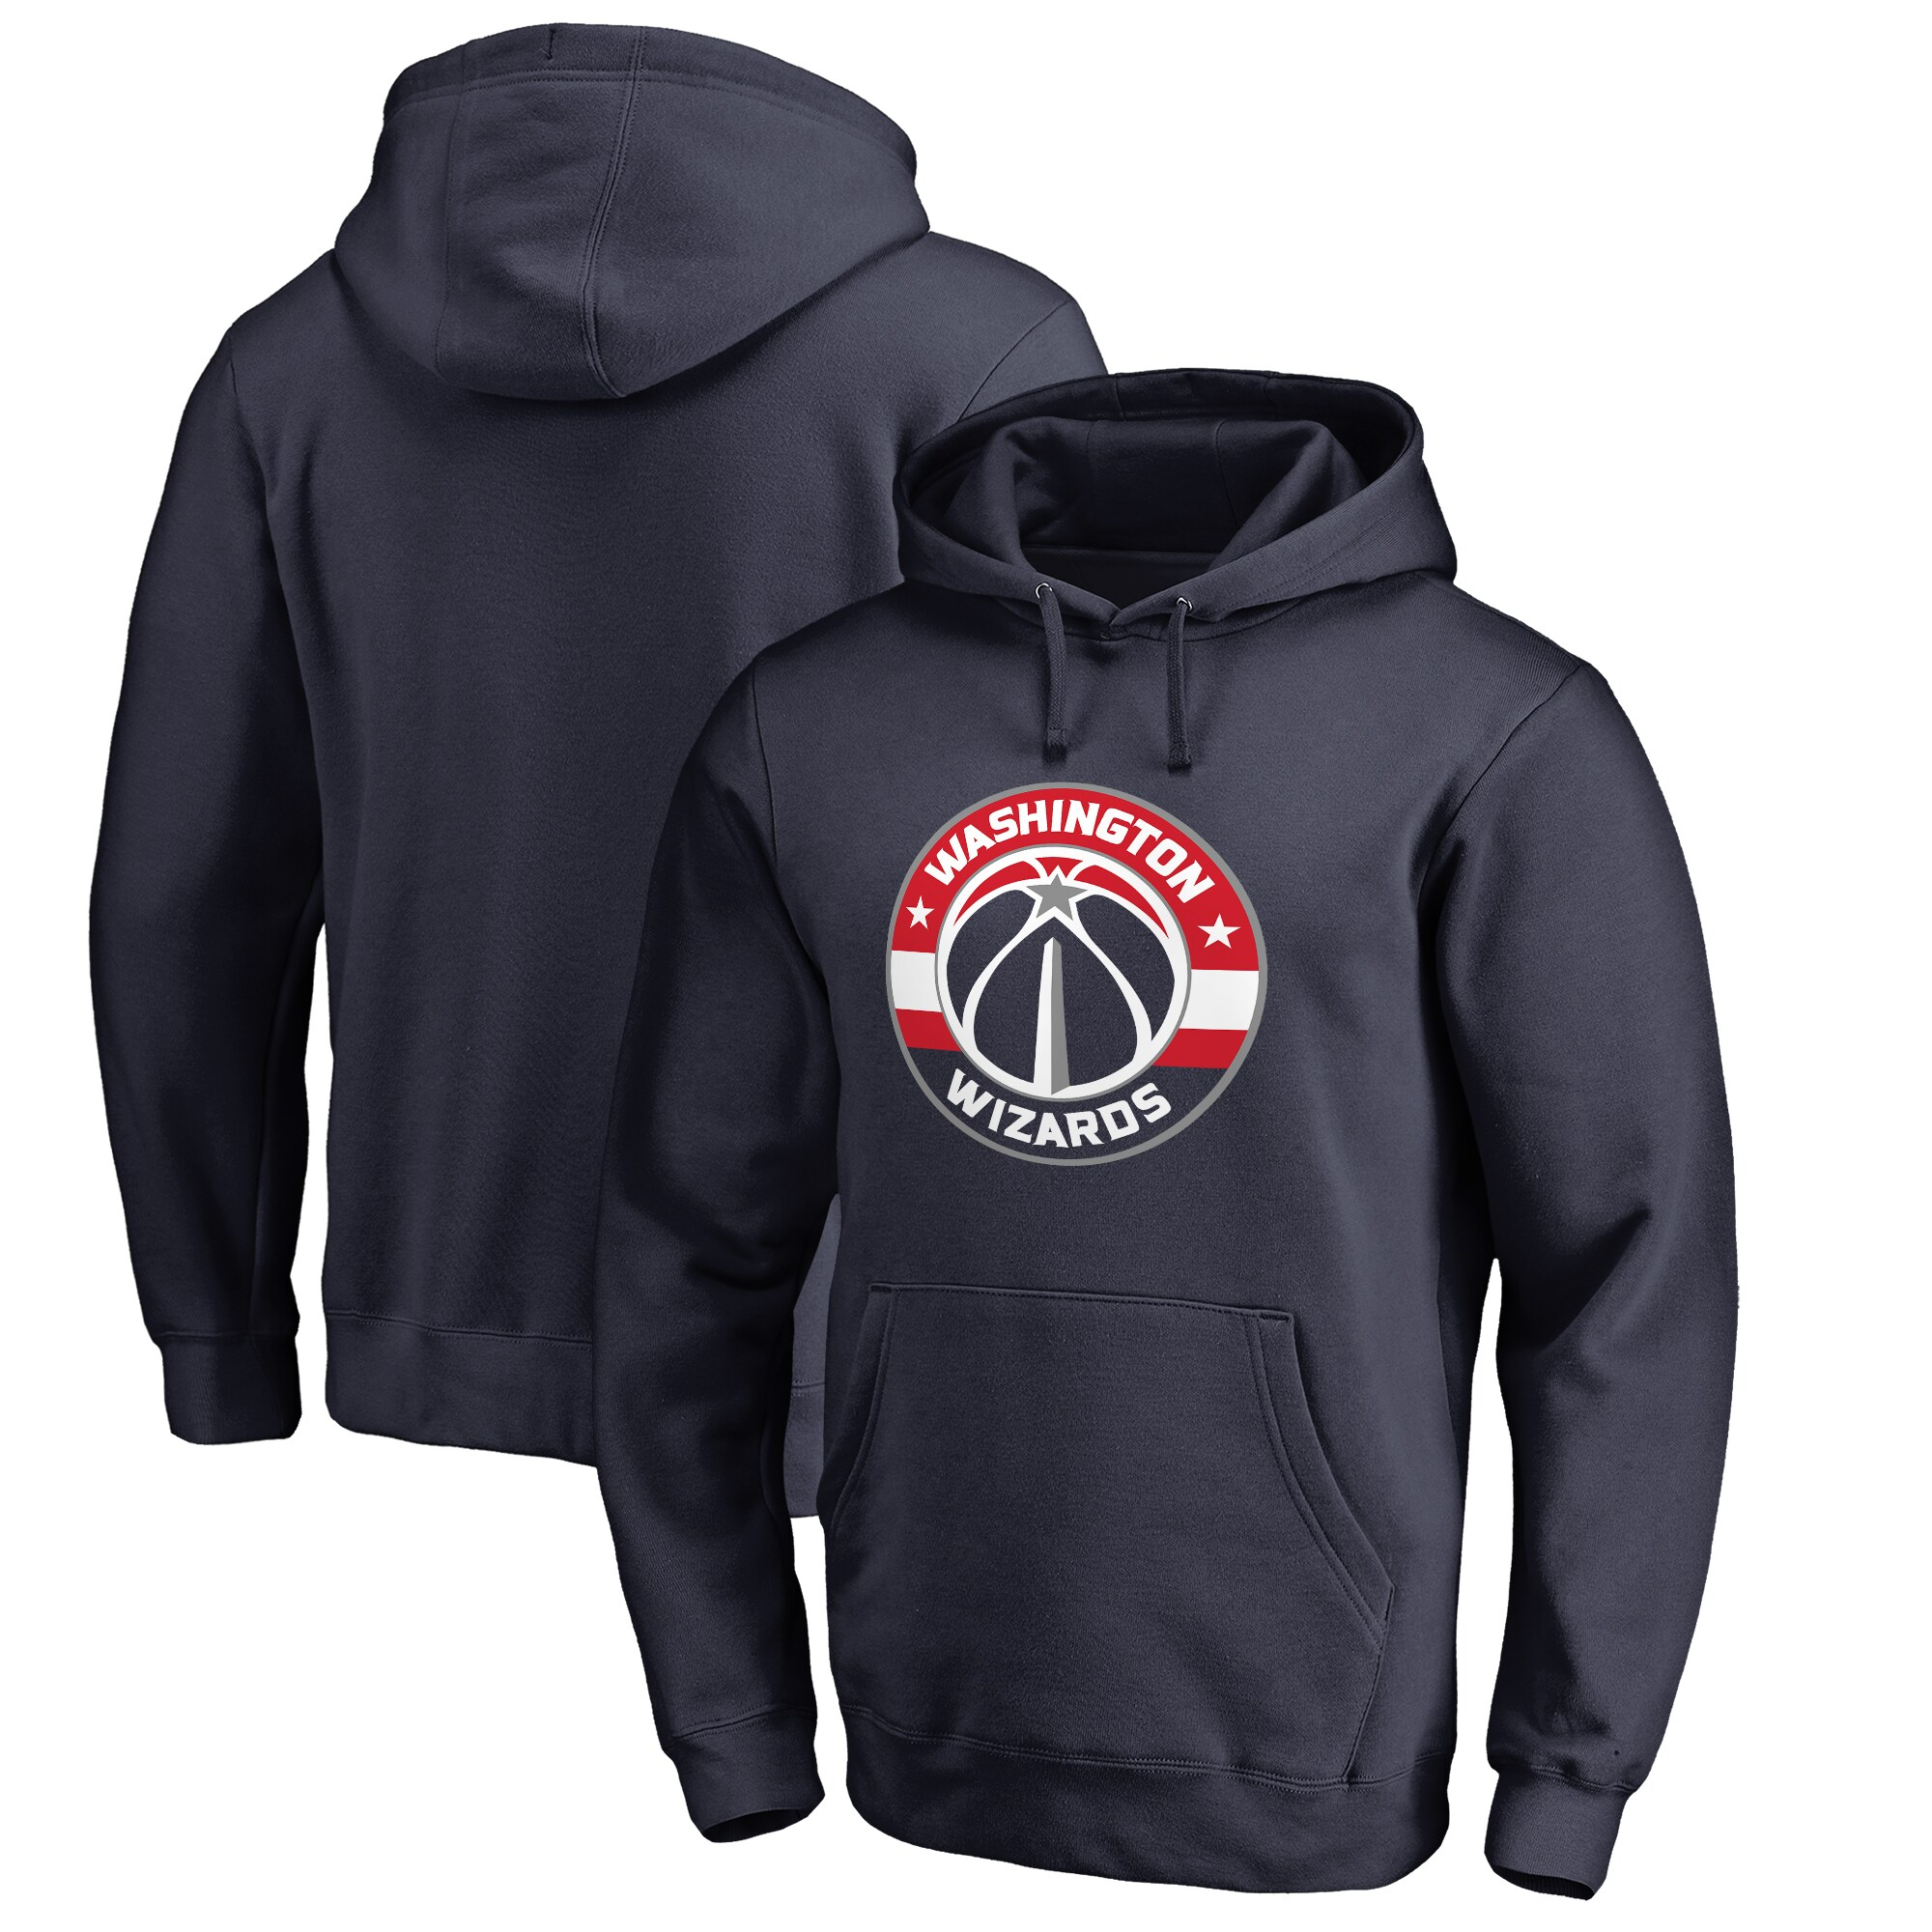 Washington Wizards Fanatics Branded Big & Tall Team Primary Logo Pullover Hoodie - Navy